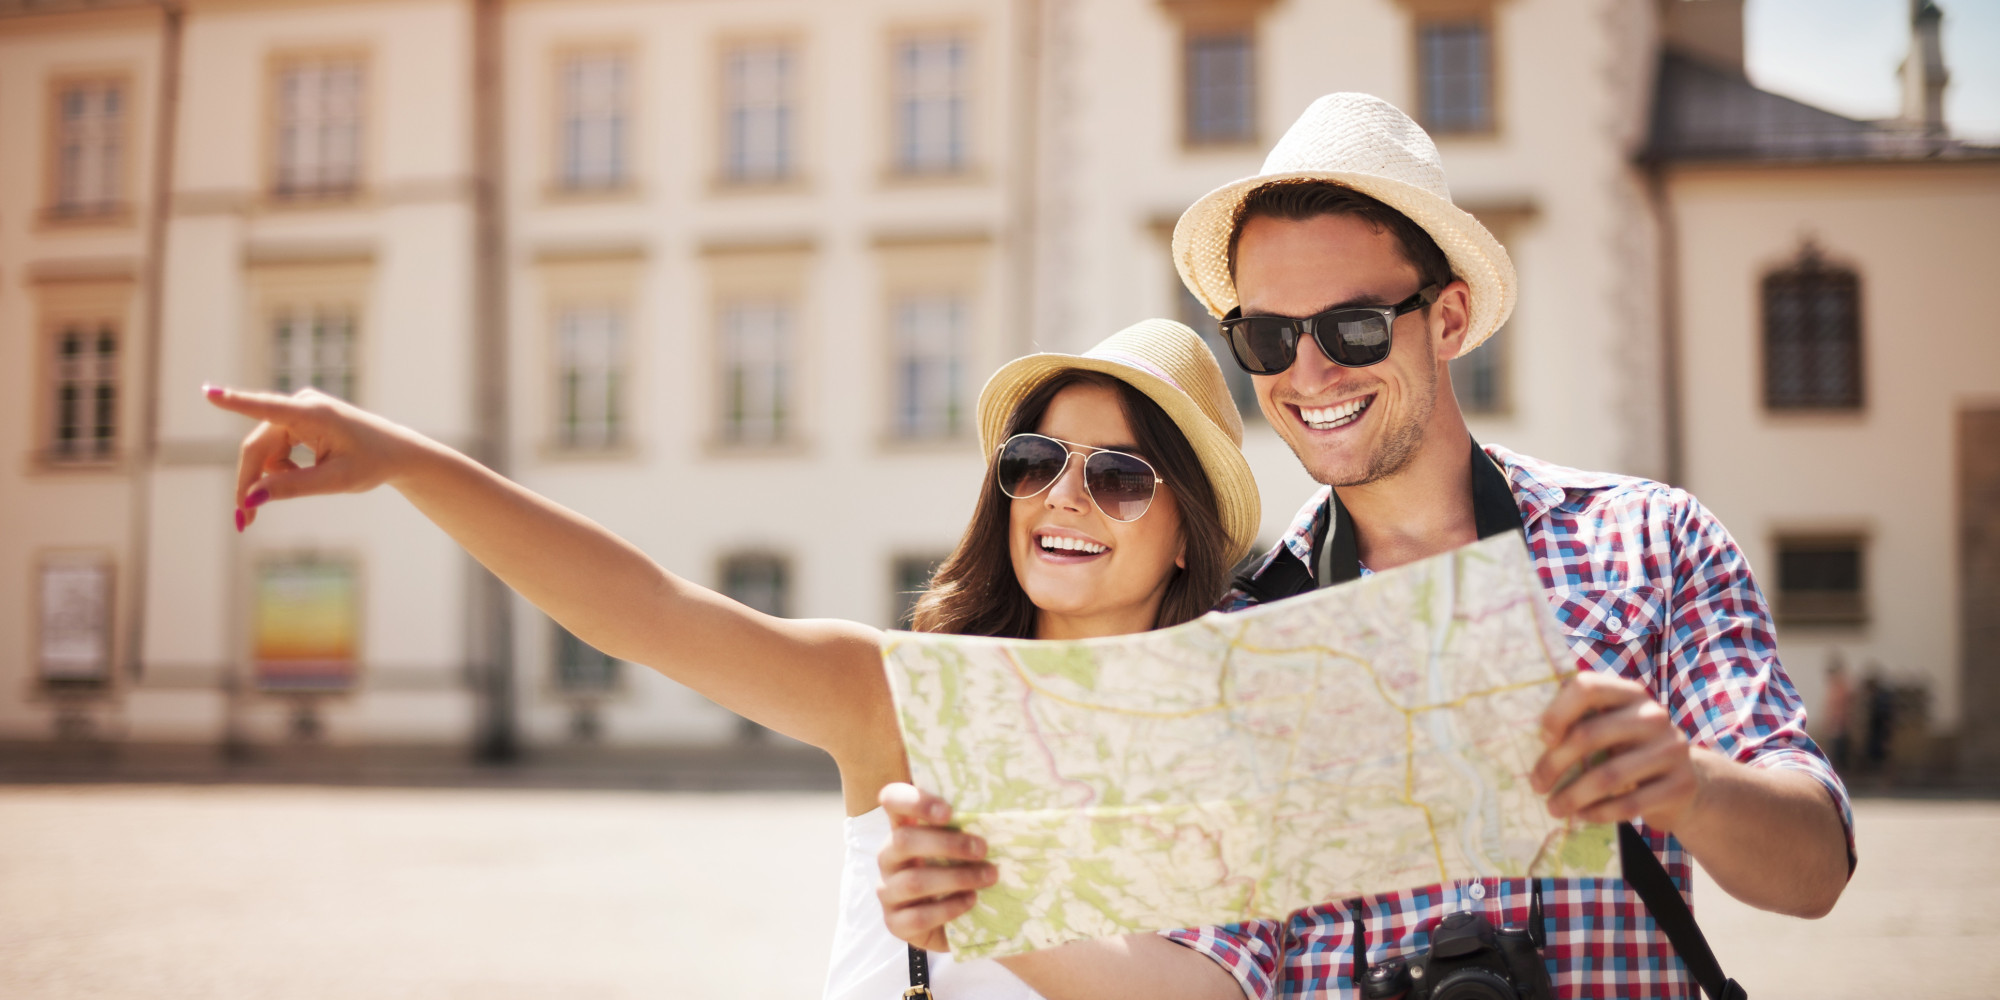 Enjoy the benefits of tourist attention